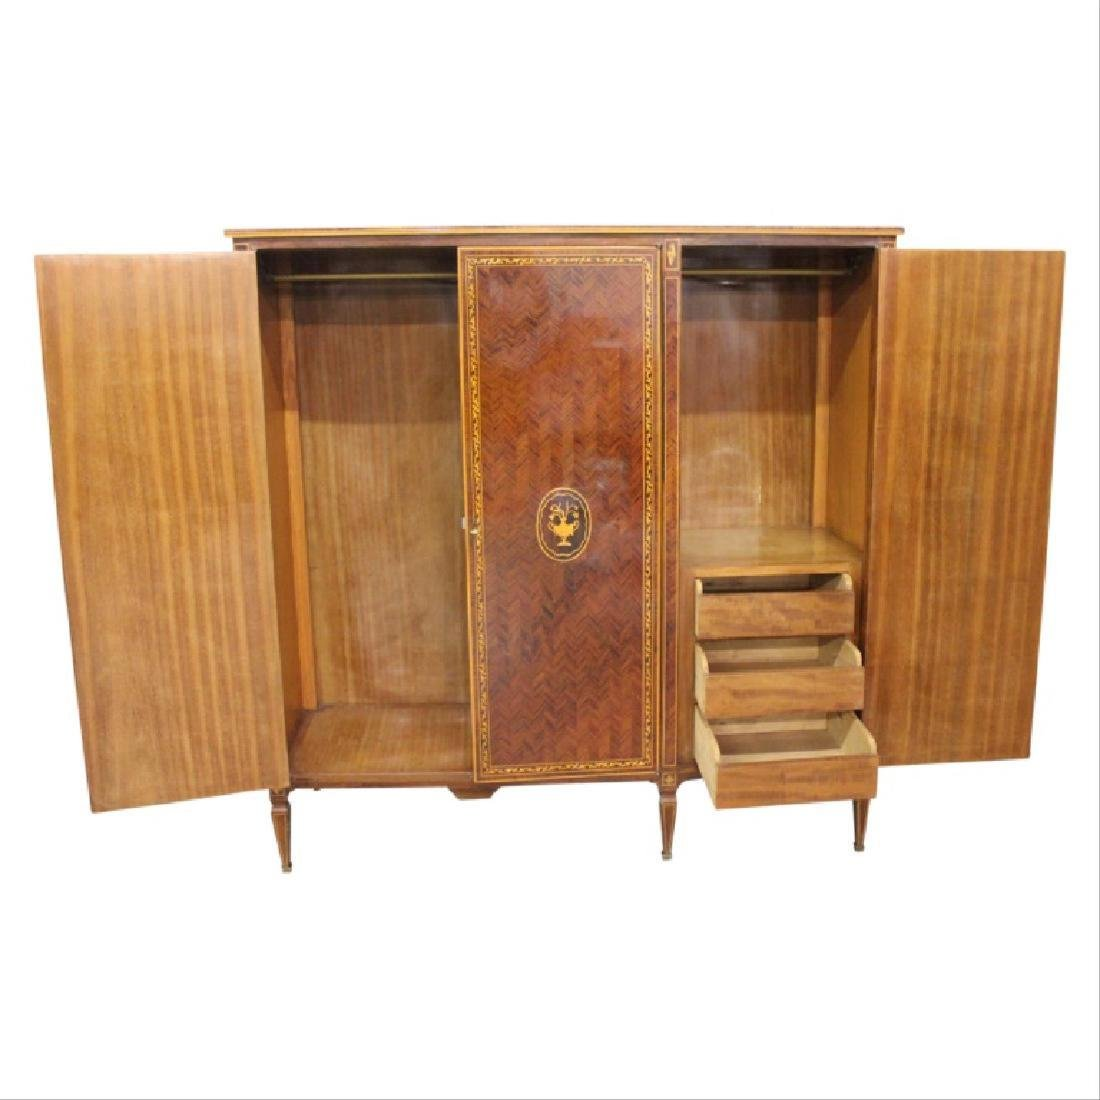 Inlaid Armoire w/ Keys - 2